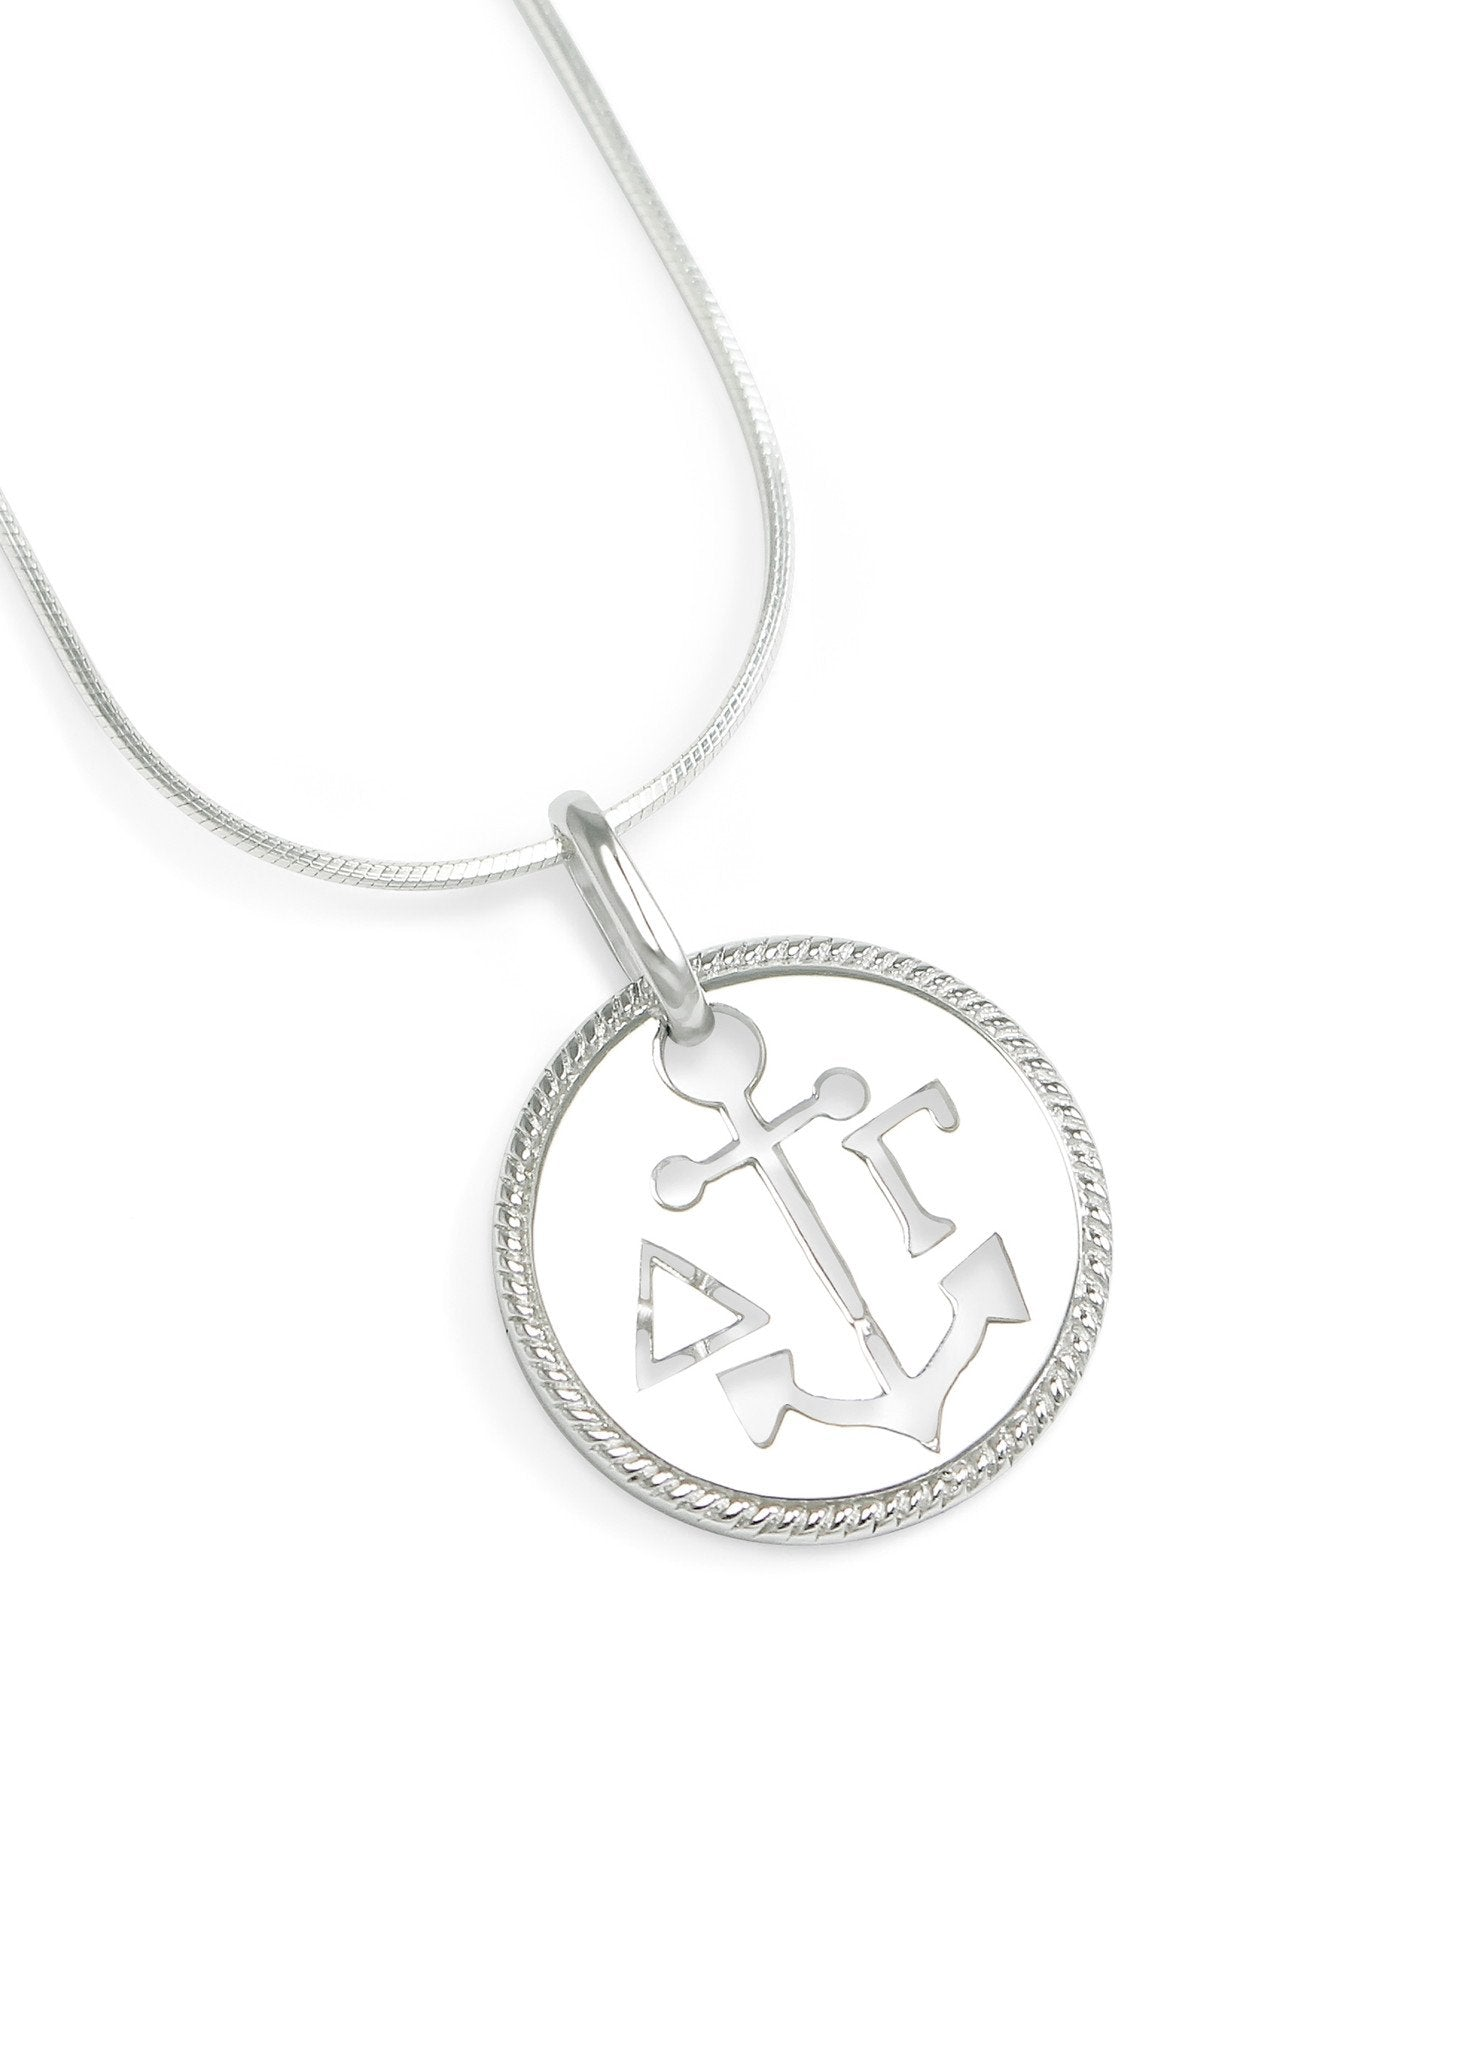 necklace delta gamma sterling silver circular pendant with cut out anchor and letters